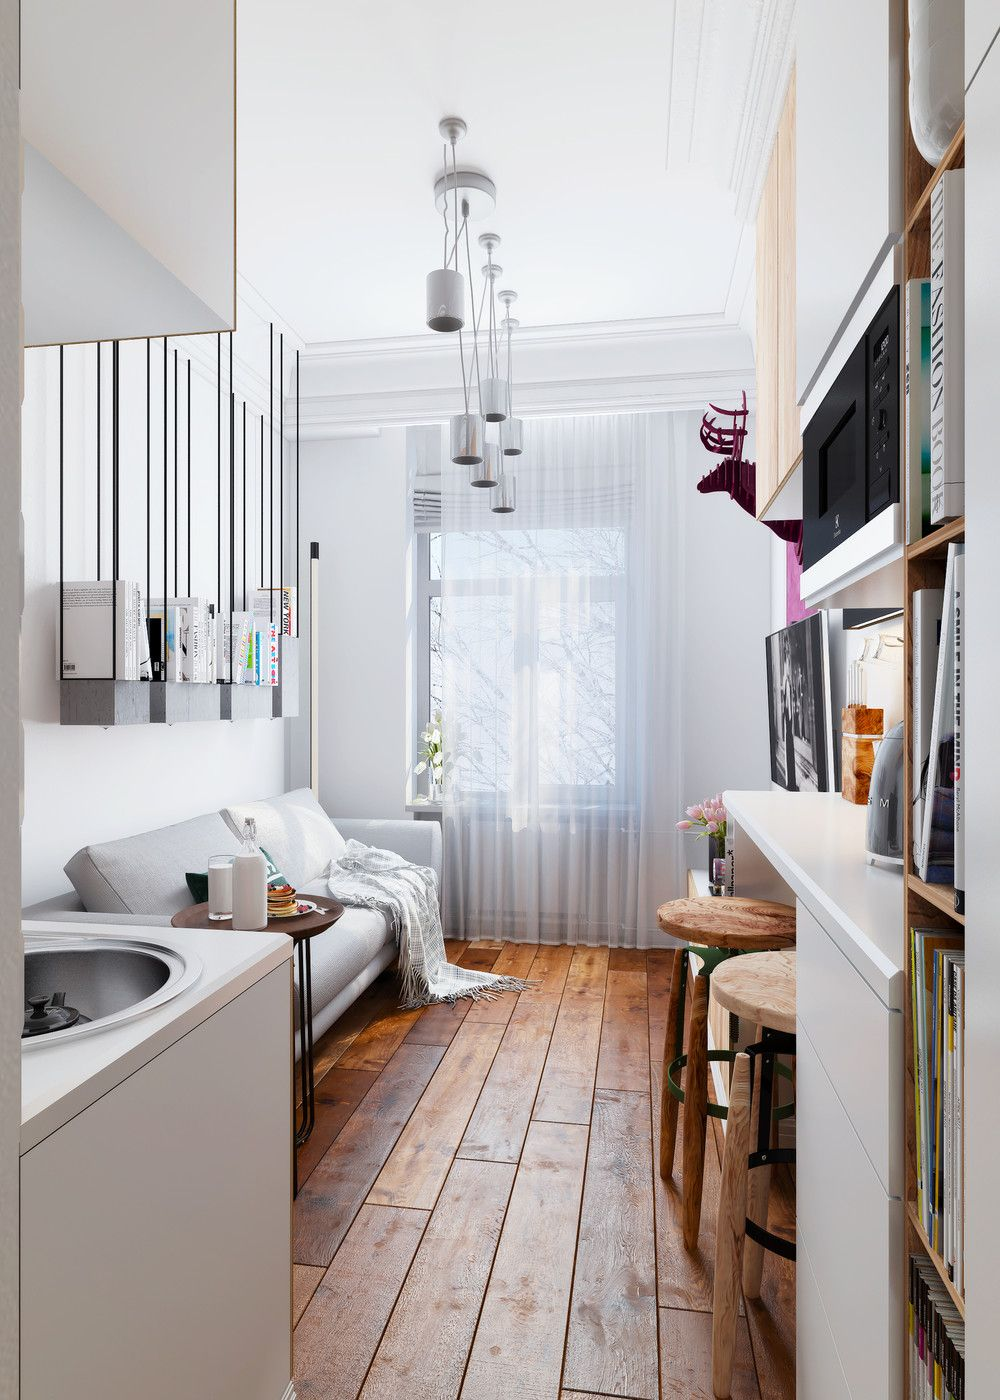 Amazing Stunning Apartment With A Size Of 15 M² Shows An Interesting Idea